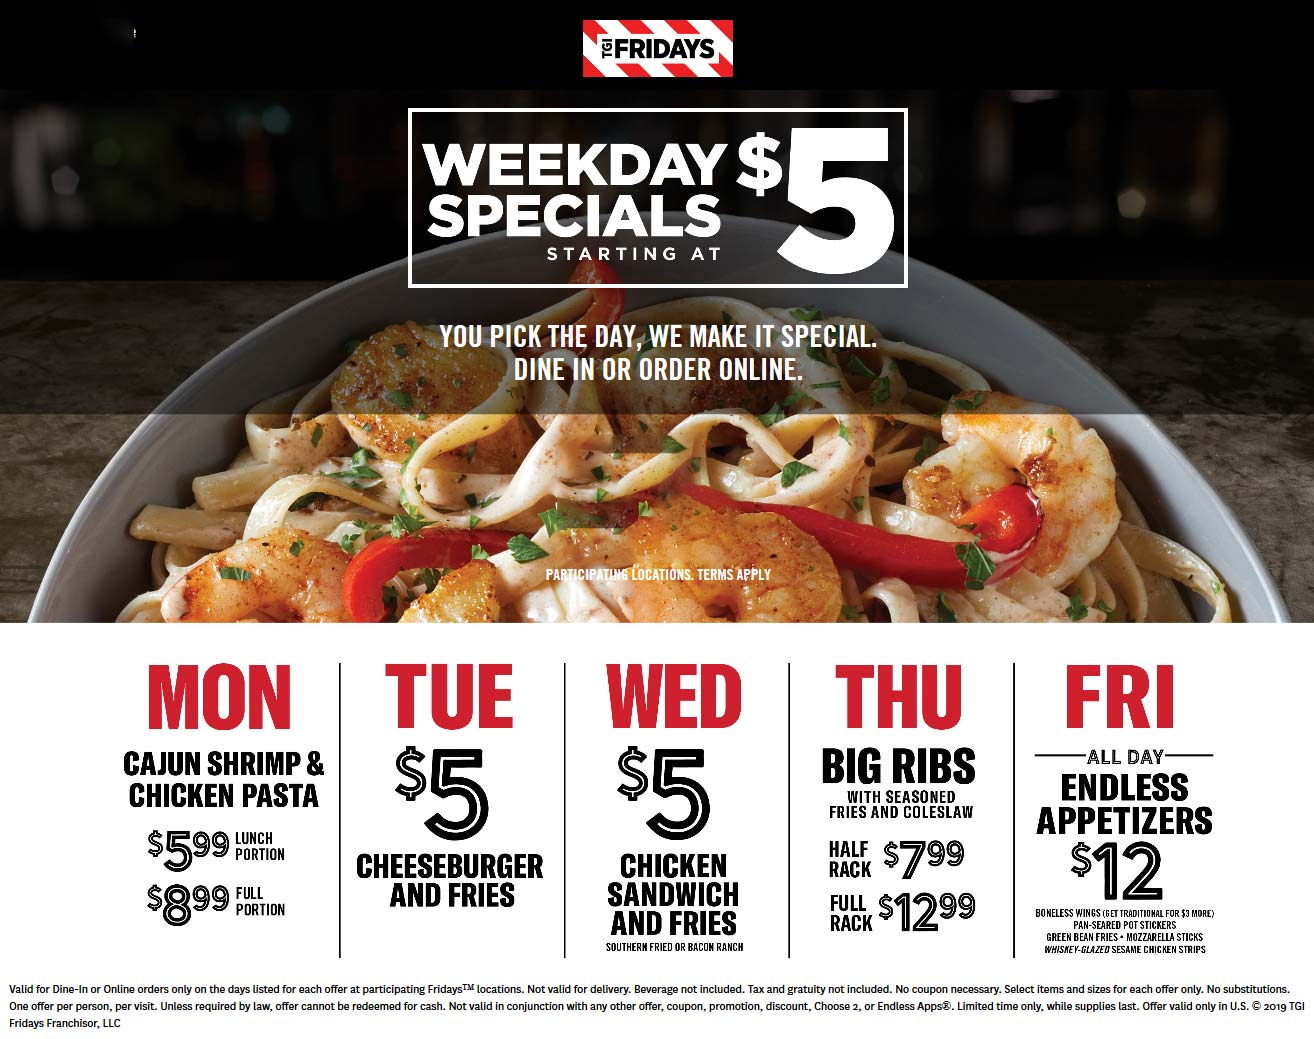 TGI Fridays coupons & promo code for [April 2021]